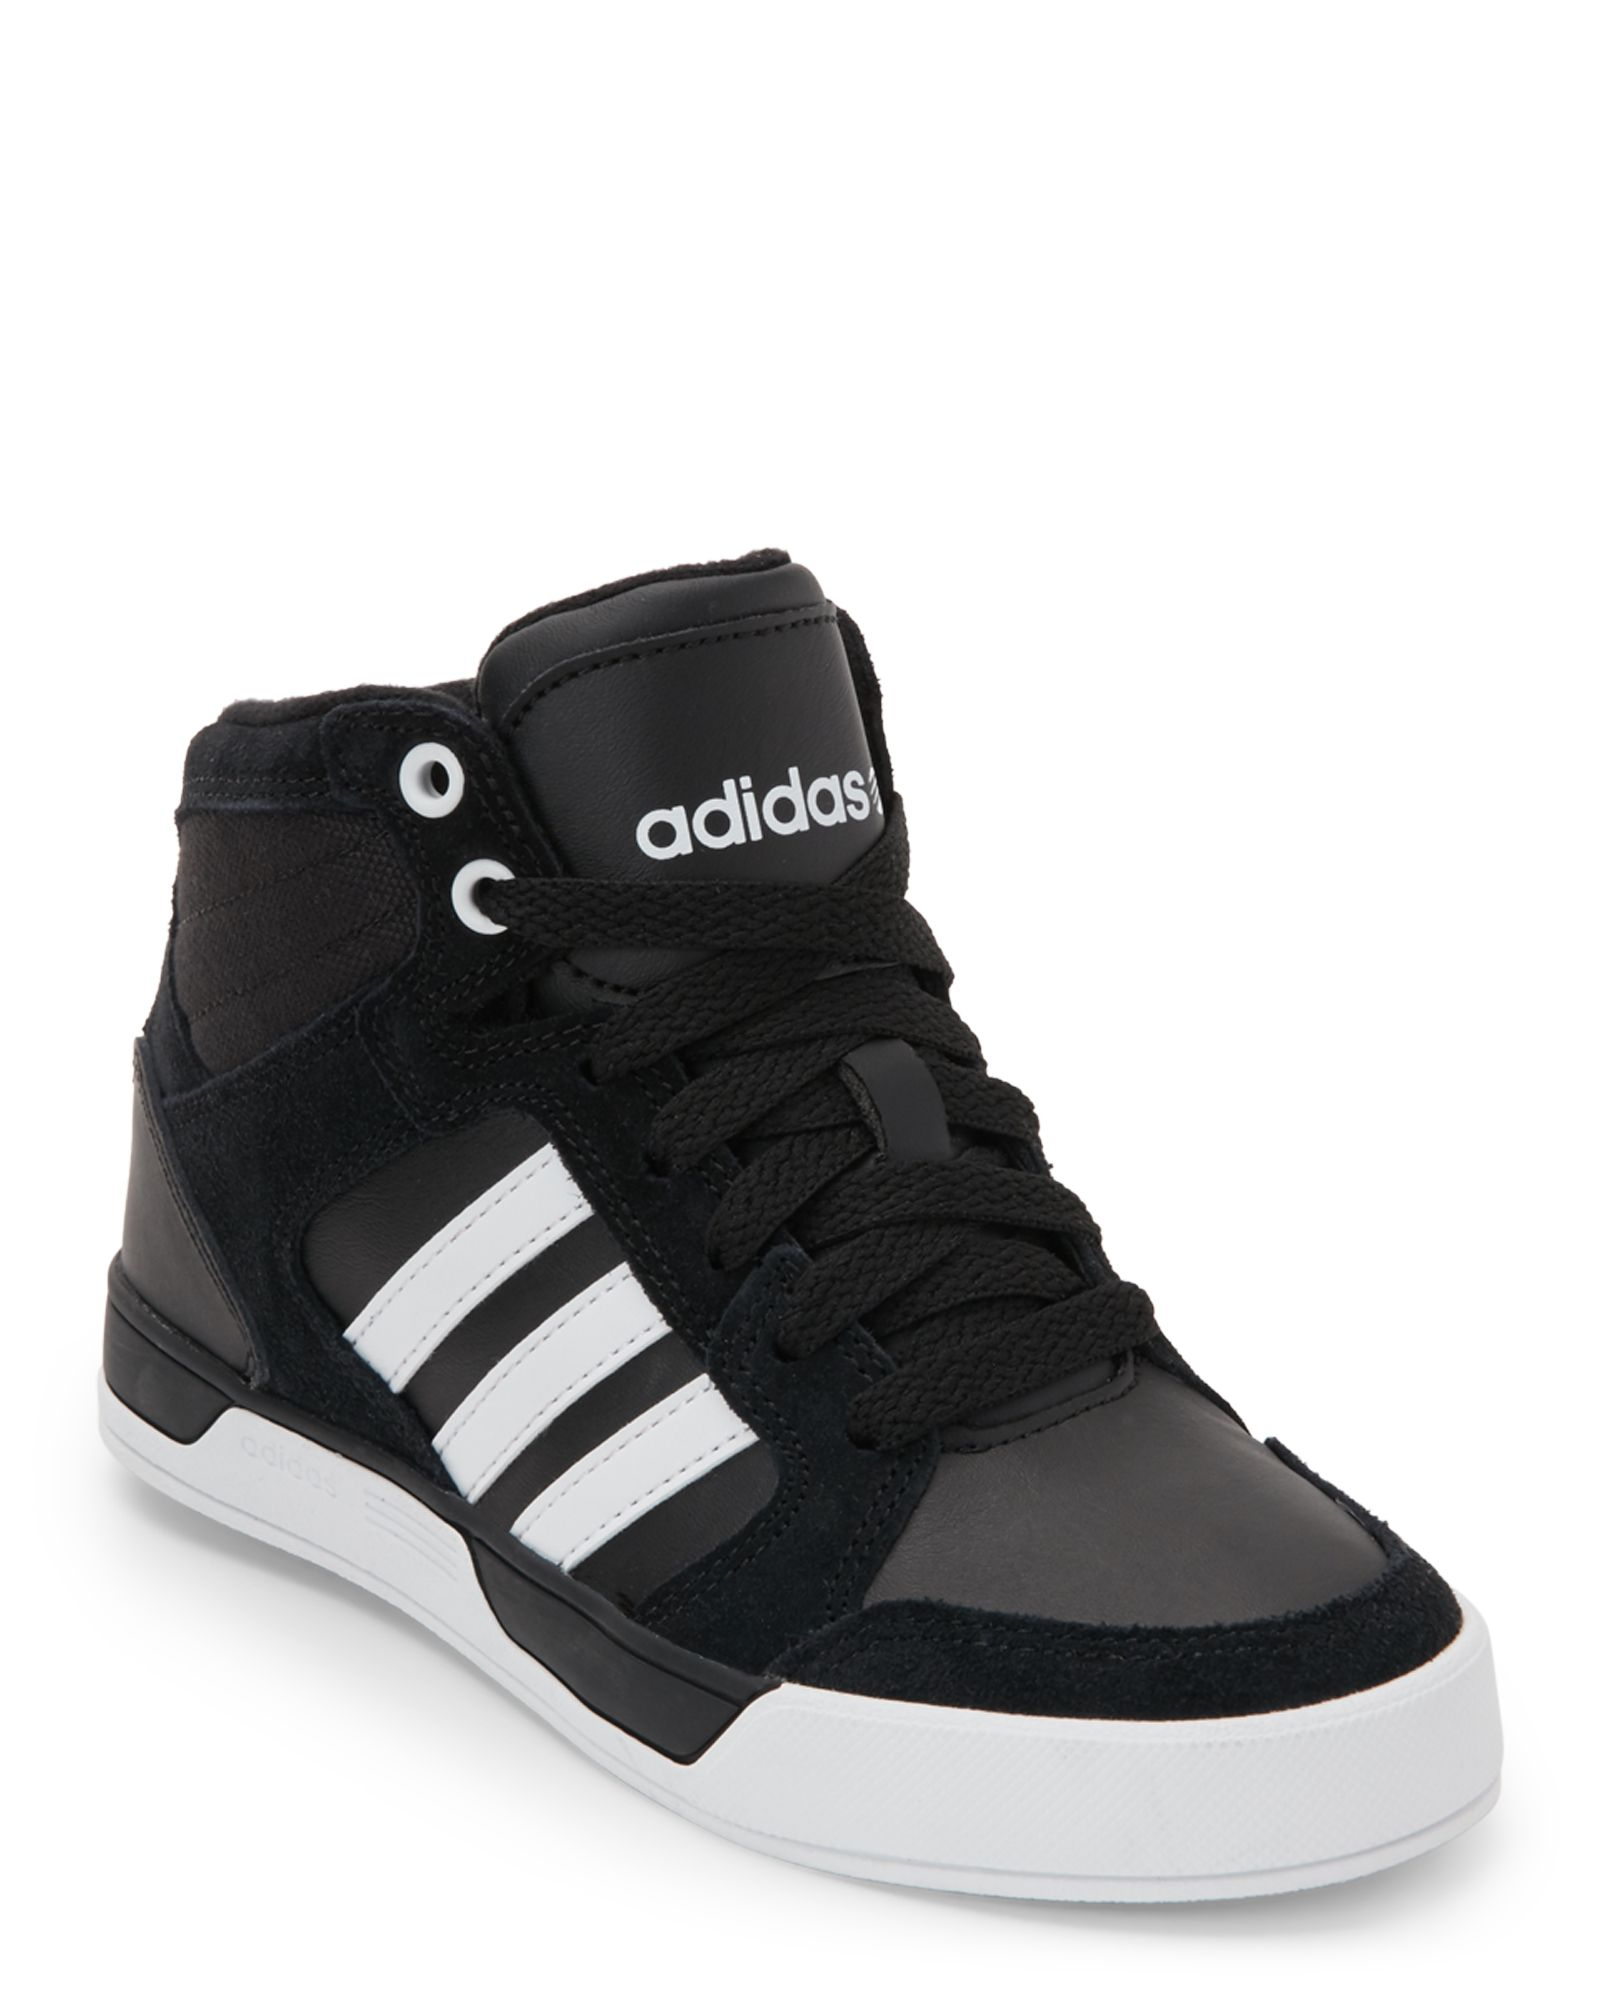 newest collection 0f2a5 a64f5 Adidas (Kids Boys) Black  White Neo Raleigh K High Top Sneakers